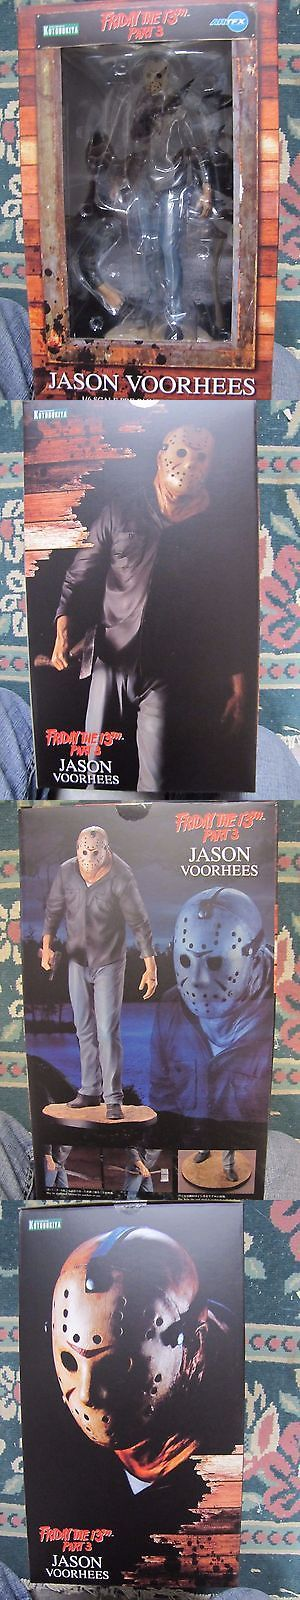 Fantasy 175693: Friday The 13Th-Part 3 ( Jason ) 1 6 Scale Pre-Painted Pvc Statue New In Box -> BUY IT NOW ONLY: $117 on eBay!